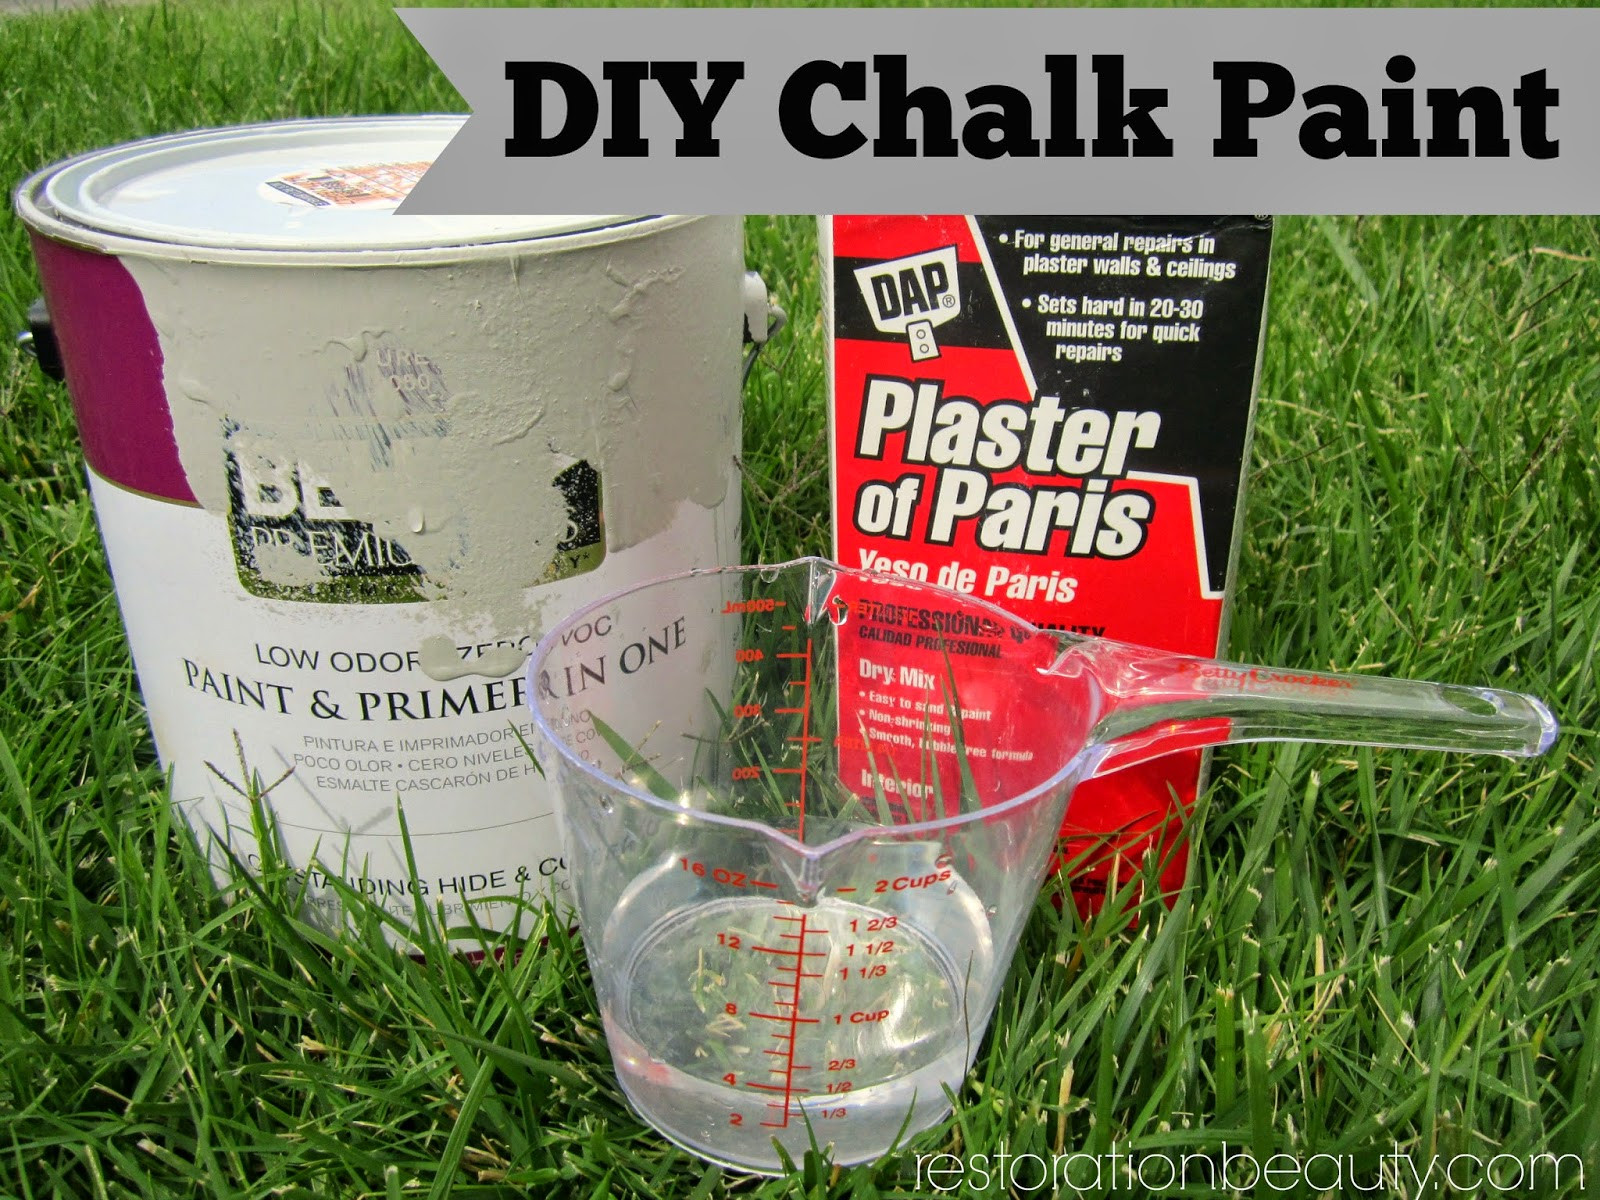 Best ideas about DIY Chalk Paint With Plaster Of Paris . Save or Pin Restoration Beauty End Table Makeover Using DIY Chalk Paint Now.